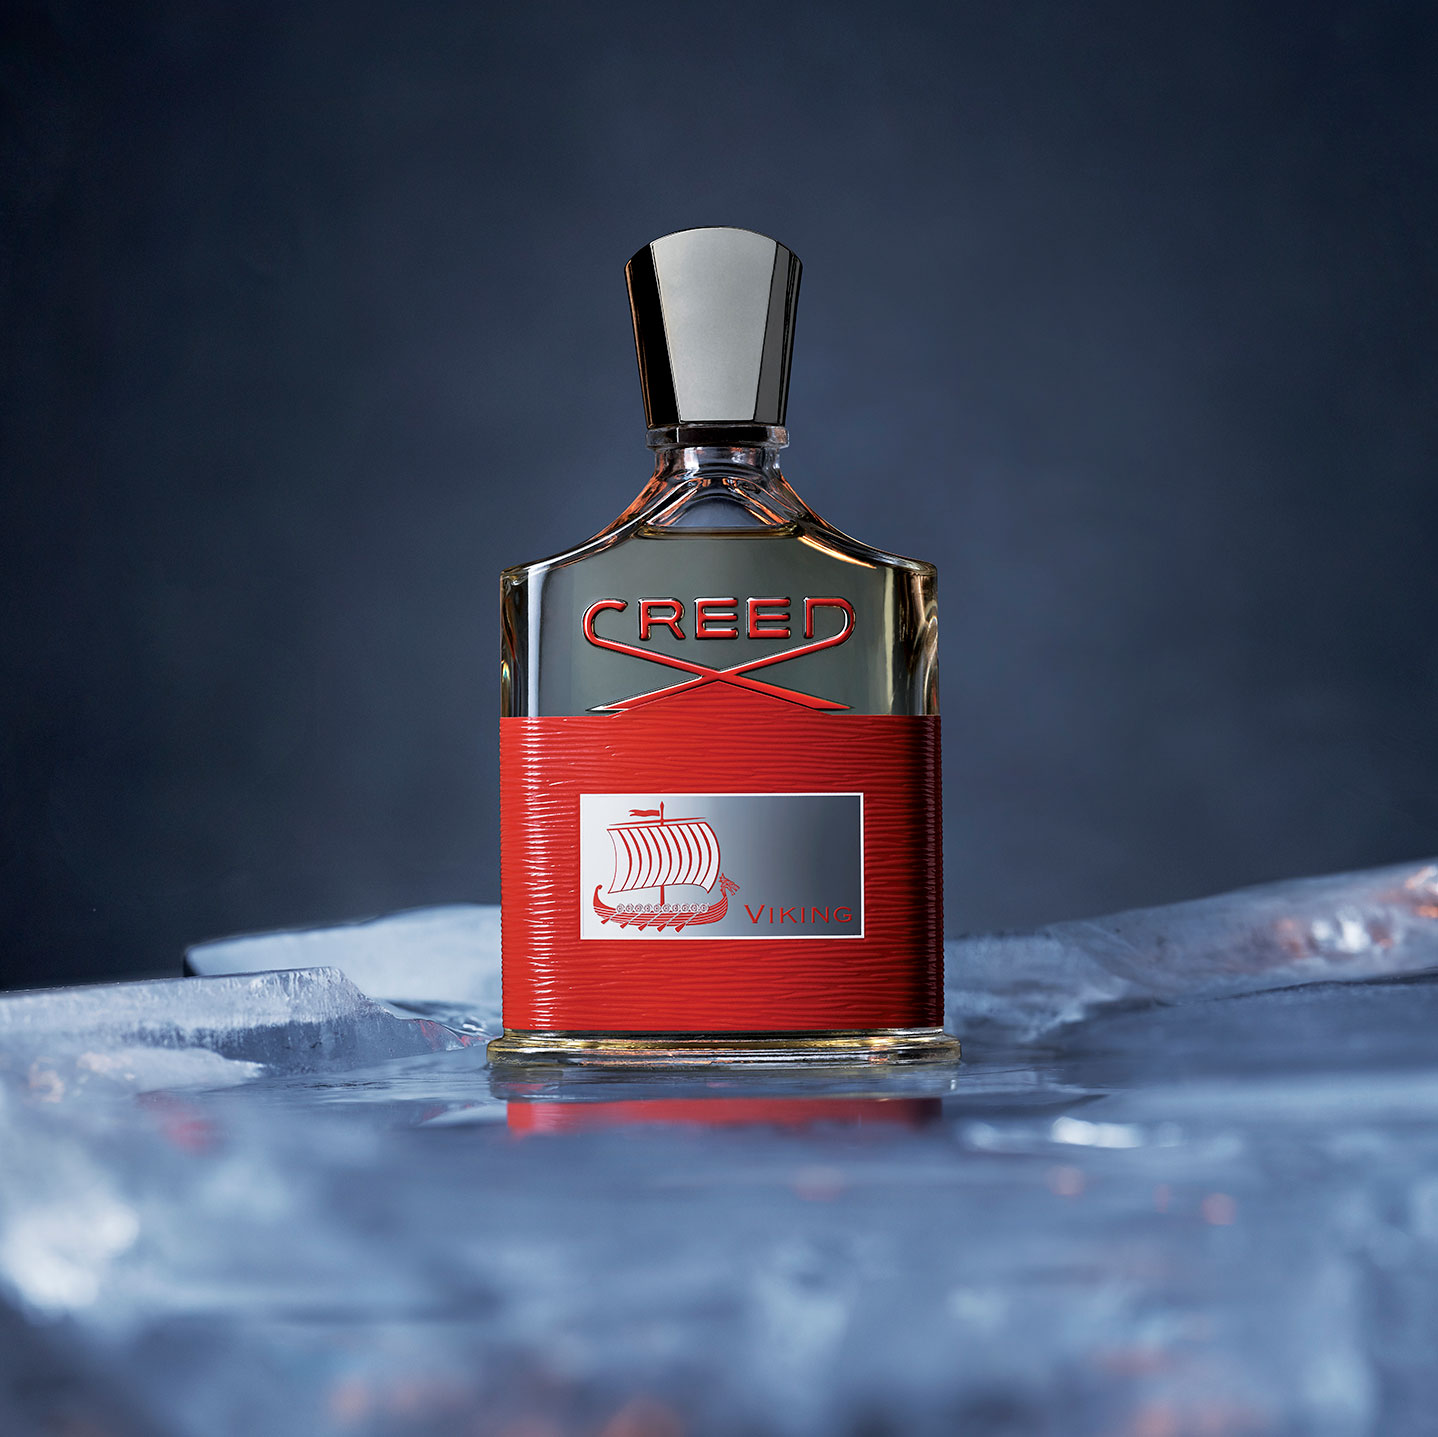 Creed Viking New Fragrances